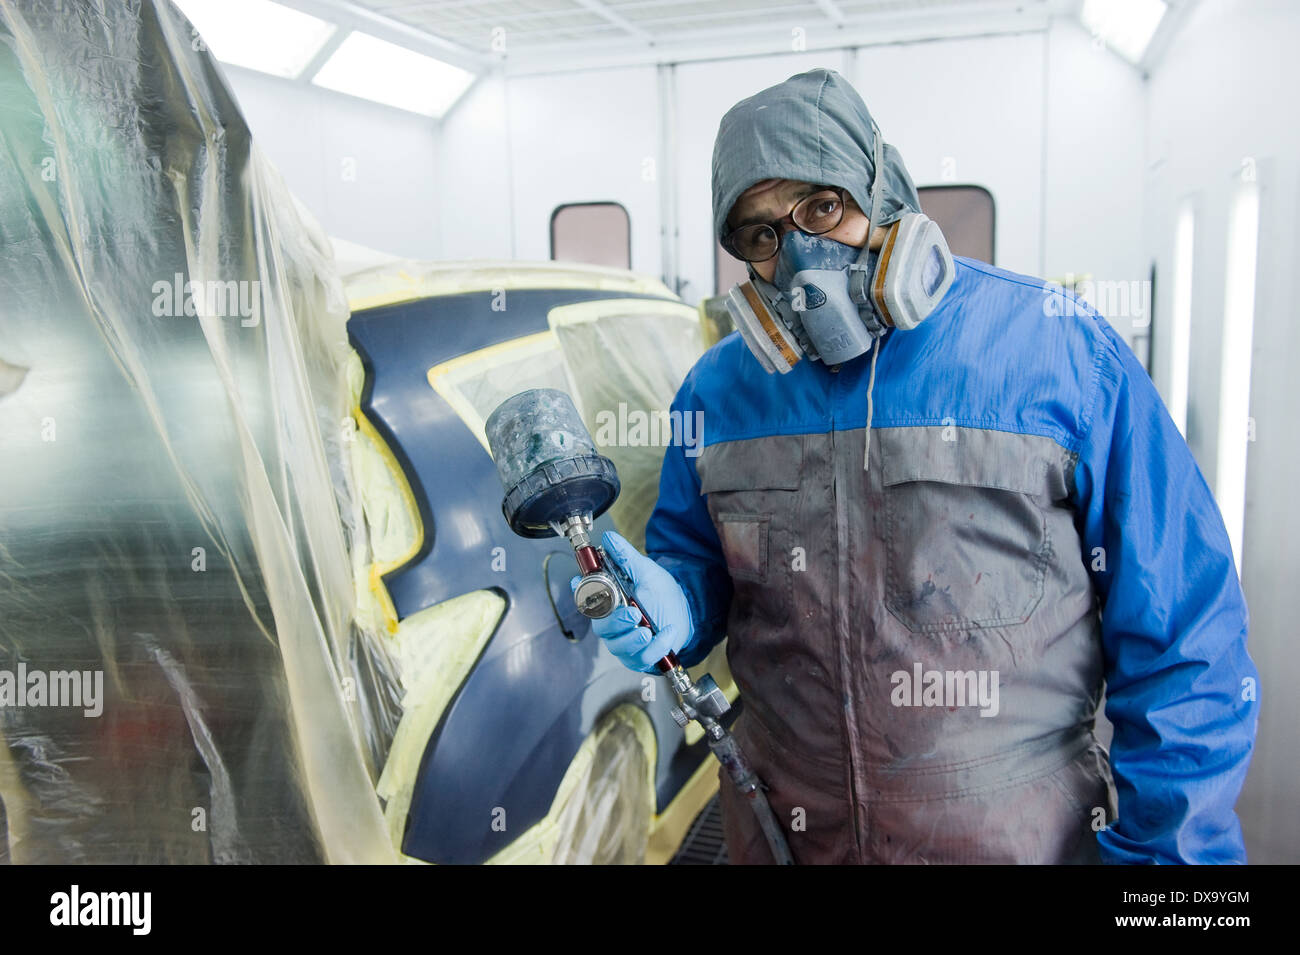 A professional car painter who is painting the body work of a car in a paint box of a garage with an airbrush. - Stock Image